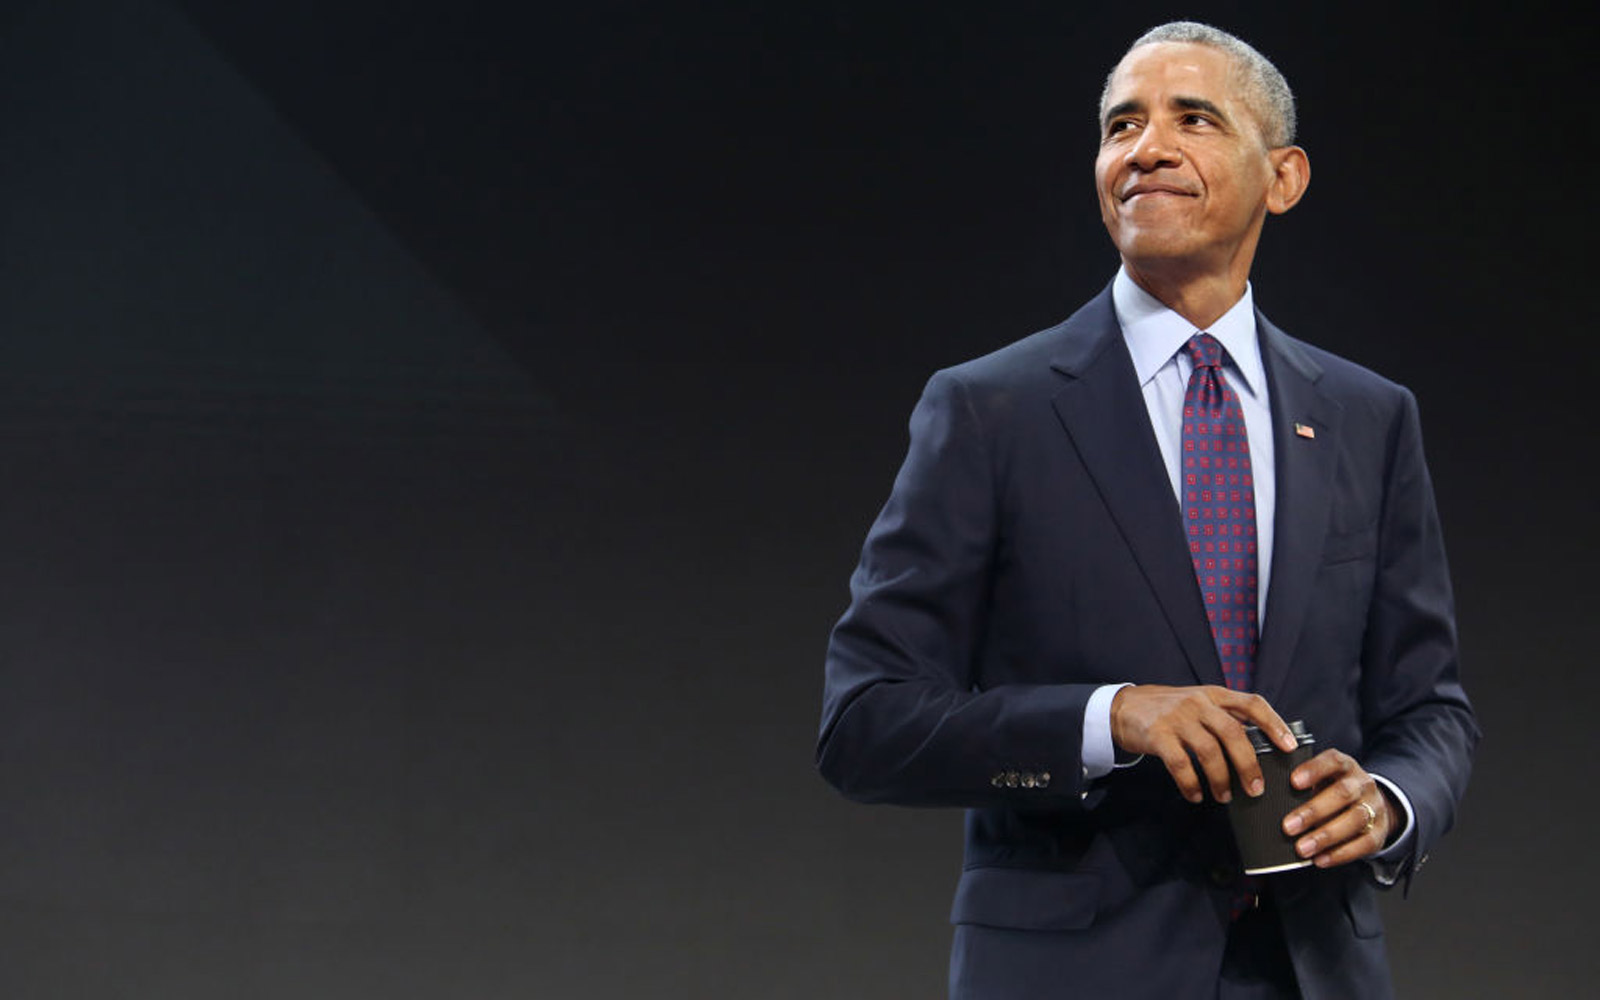 You Can Now Apply to Work for Former President Obama